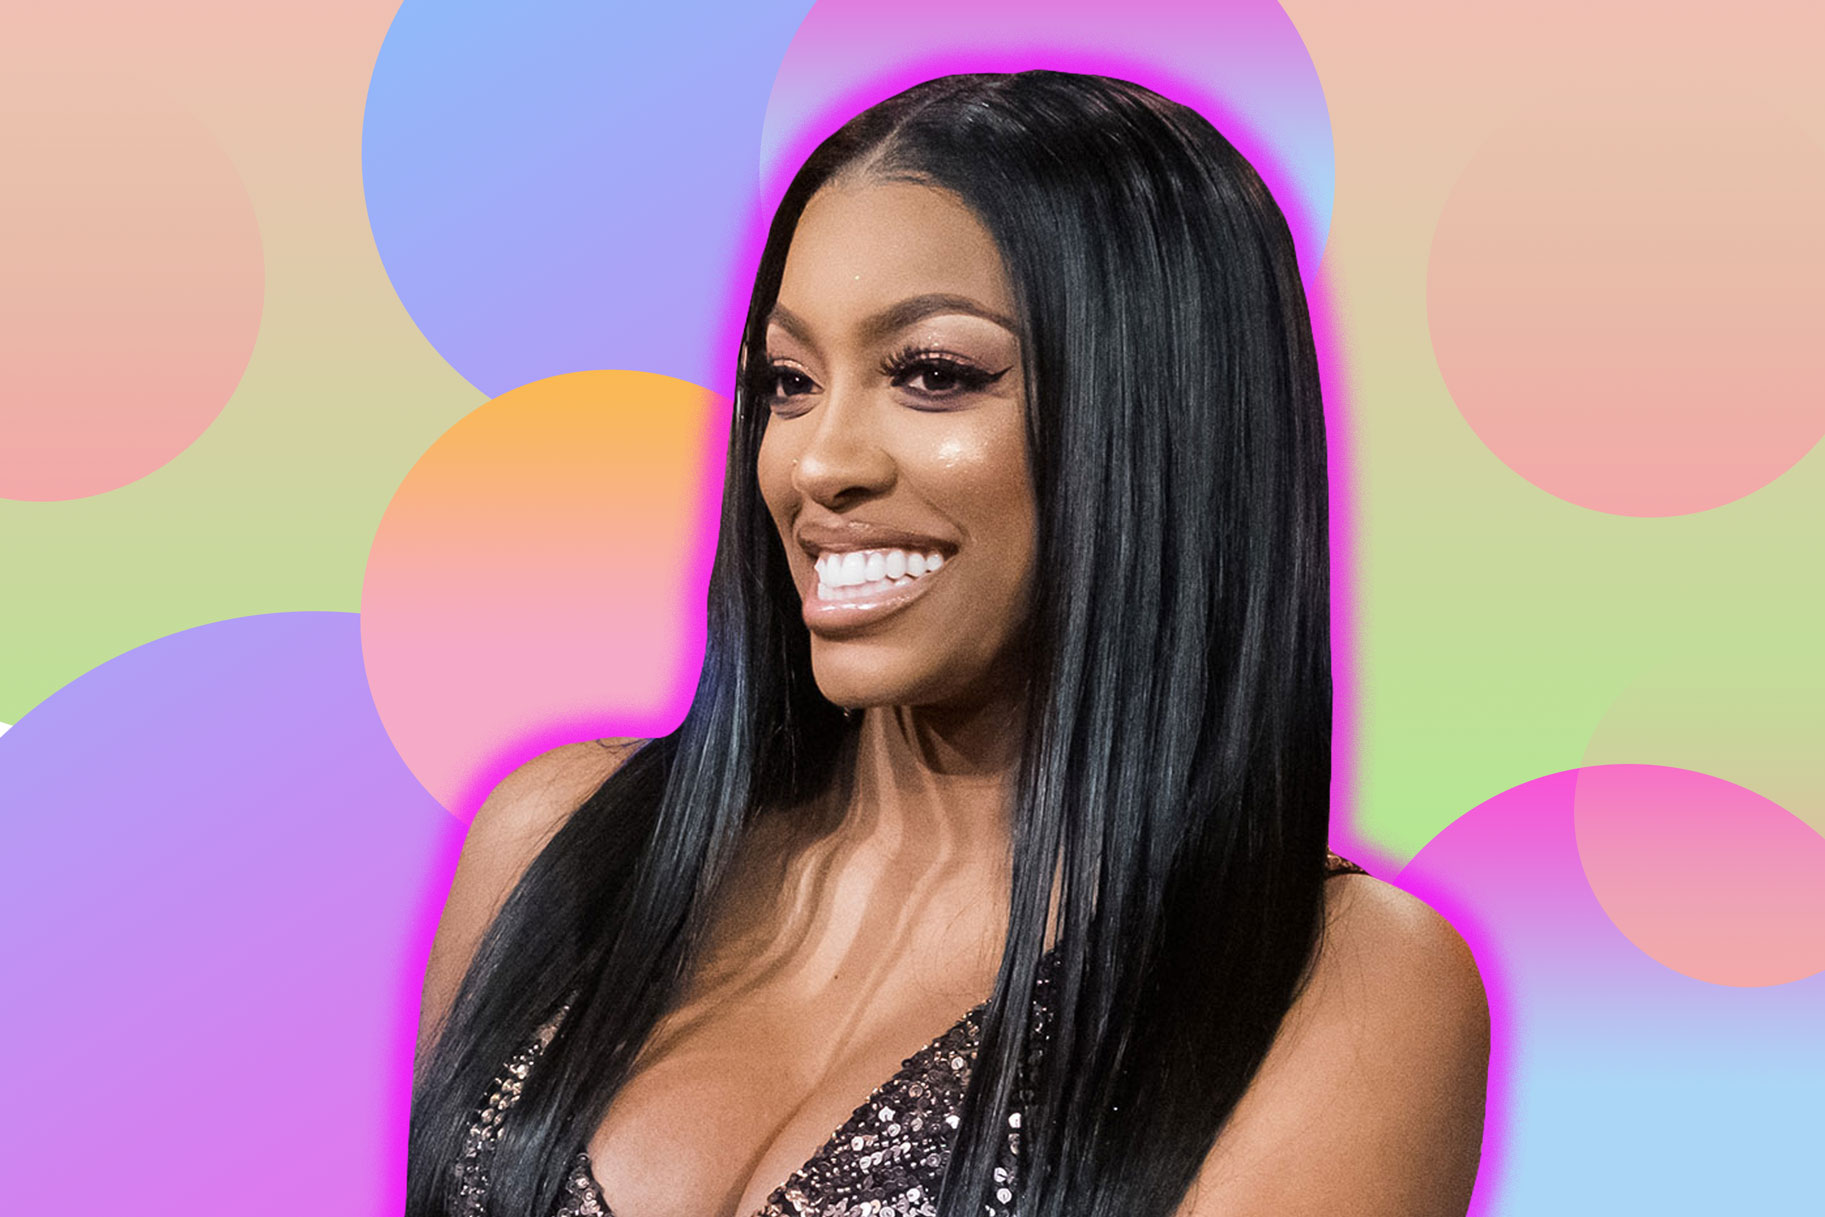 porsha-williams-gets-ready-for-a-charitable-event-and-the-reason-for-which-shes-late-melts-fans-hearts-see-the-video